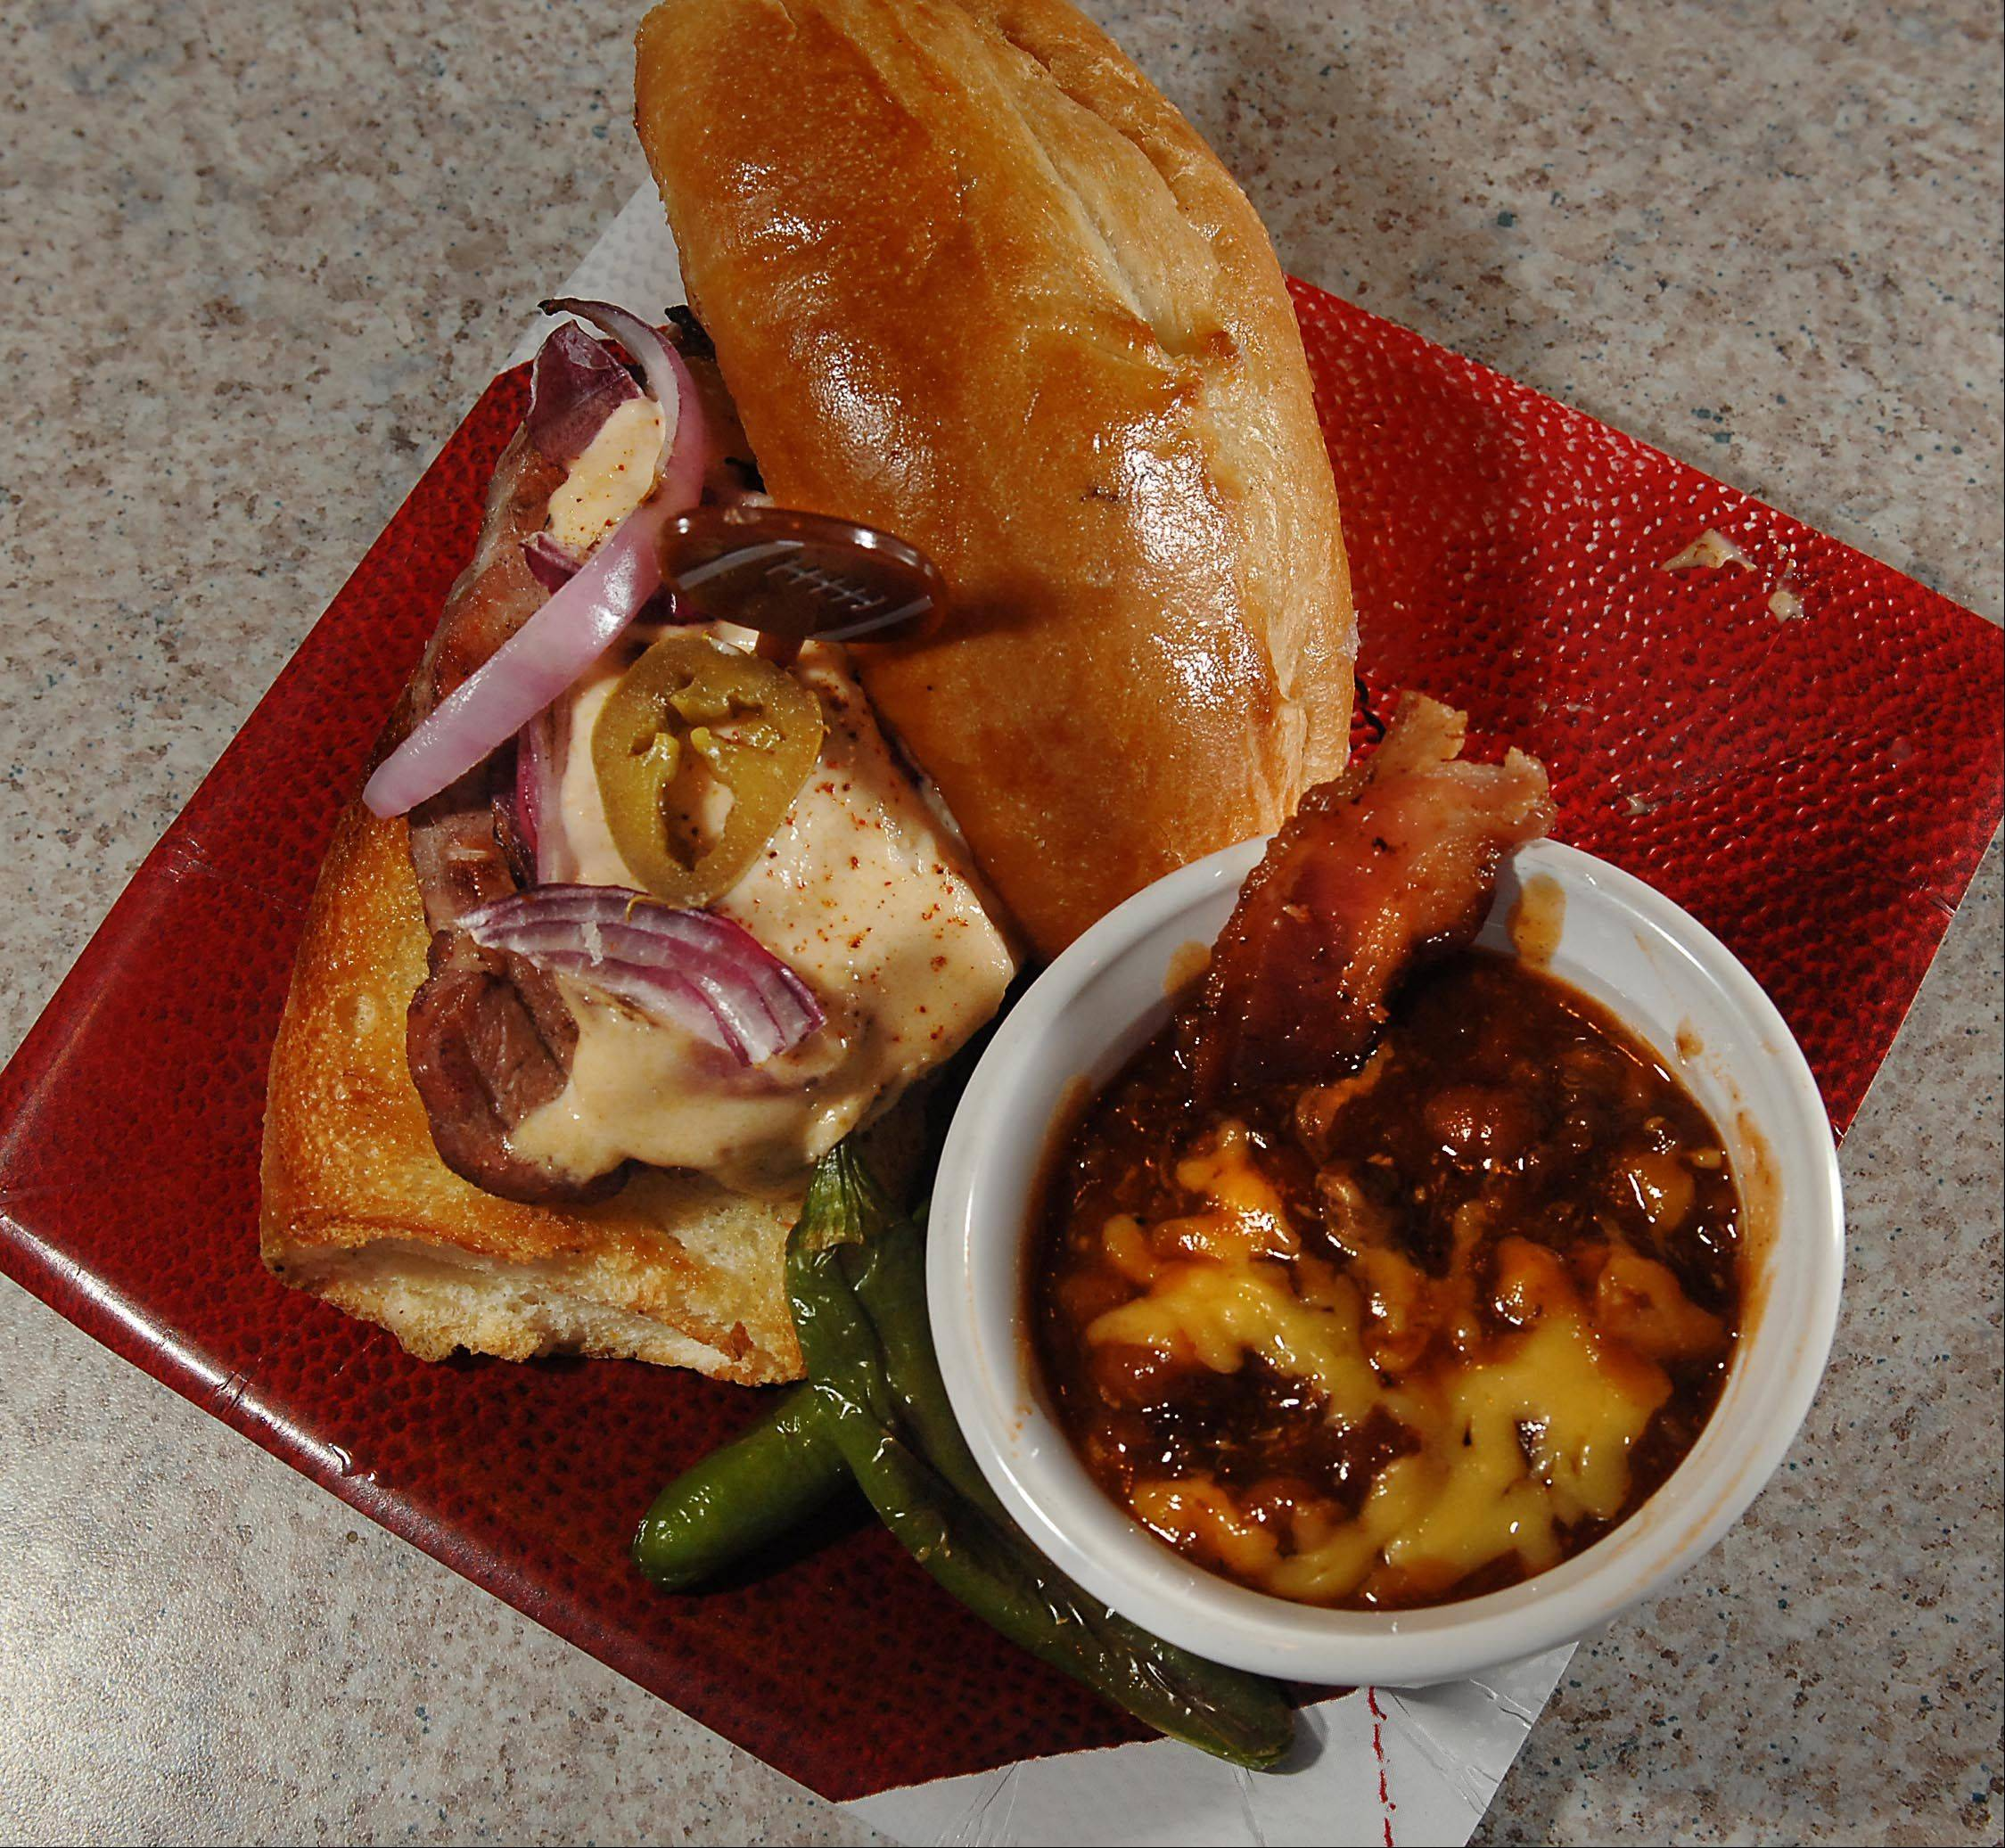 Mary Beth Thornton created an American-cheese sauce for grilled pork chop sandwiches. The pairs the sandwich with cumin- and Chianti-infused baked beans.